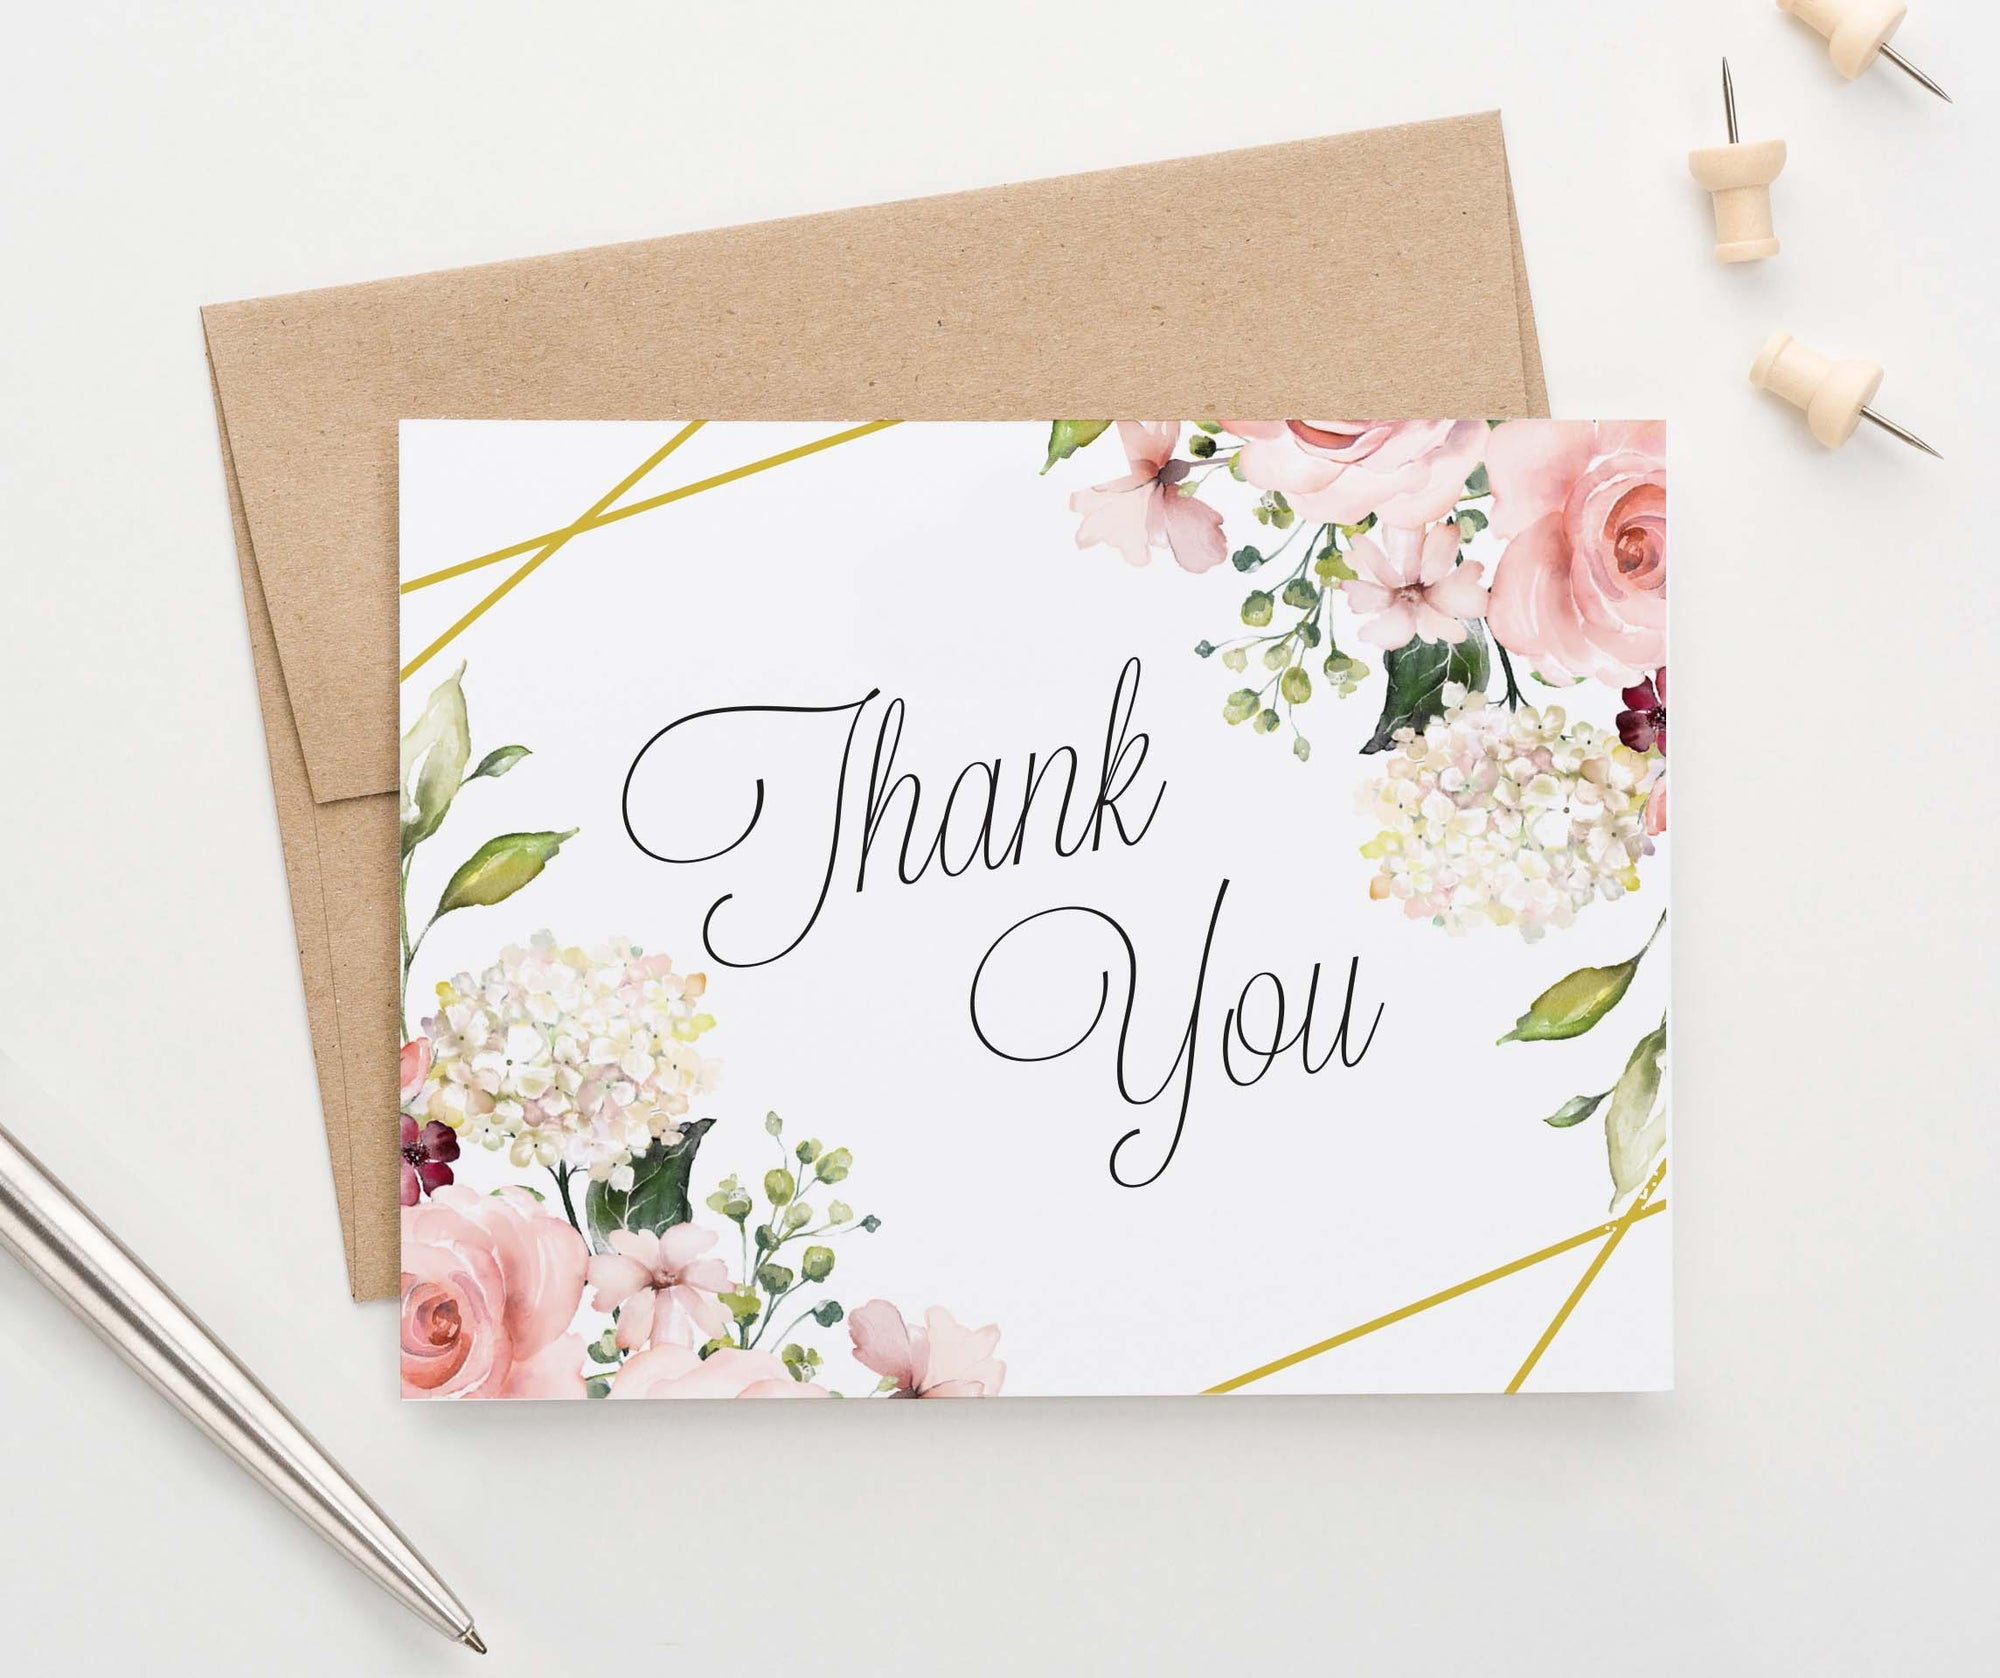 TY063 elegant floral corners folded thank you cards wedding gold